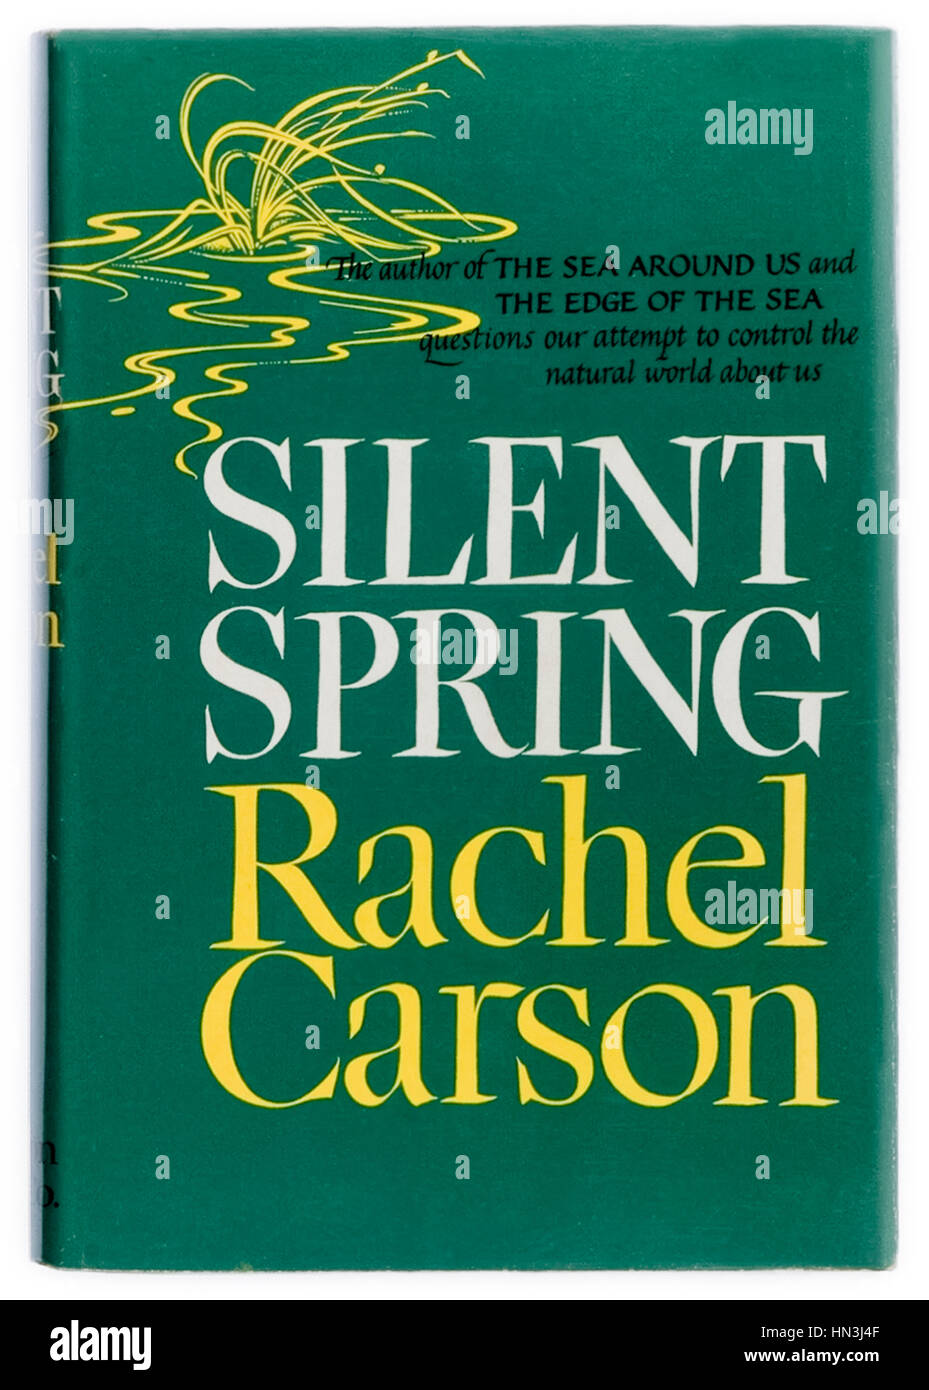 analysis of silent spring by rachel carson Silent spring by rachel carson year written: 1962 the beginning of the environmentalist movement short summary the pesticides used in an attempt to control insects that were major threats to national and international agriculture and the deadly and lasting results rachel carson elaborates with careful research the harmful effects of.